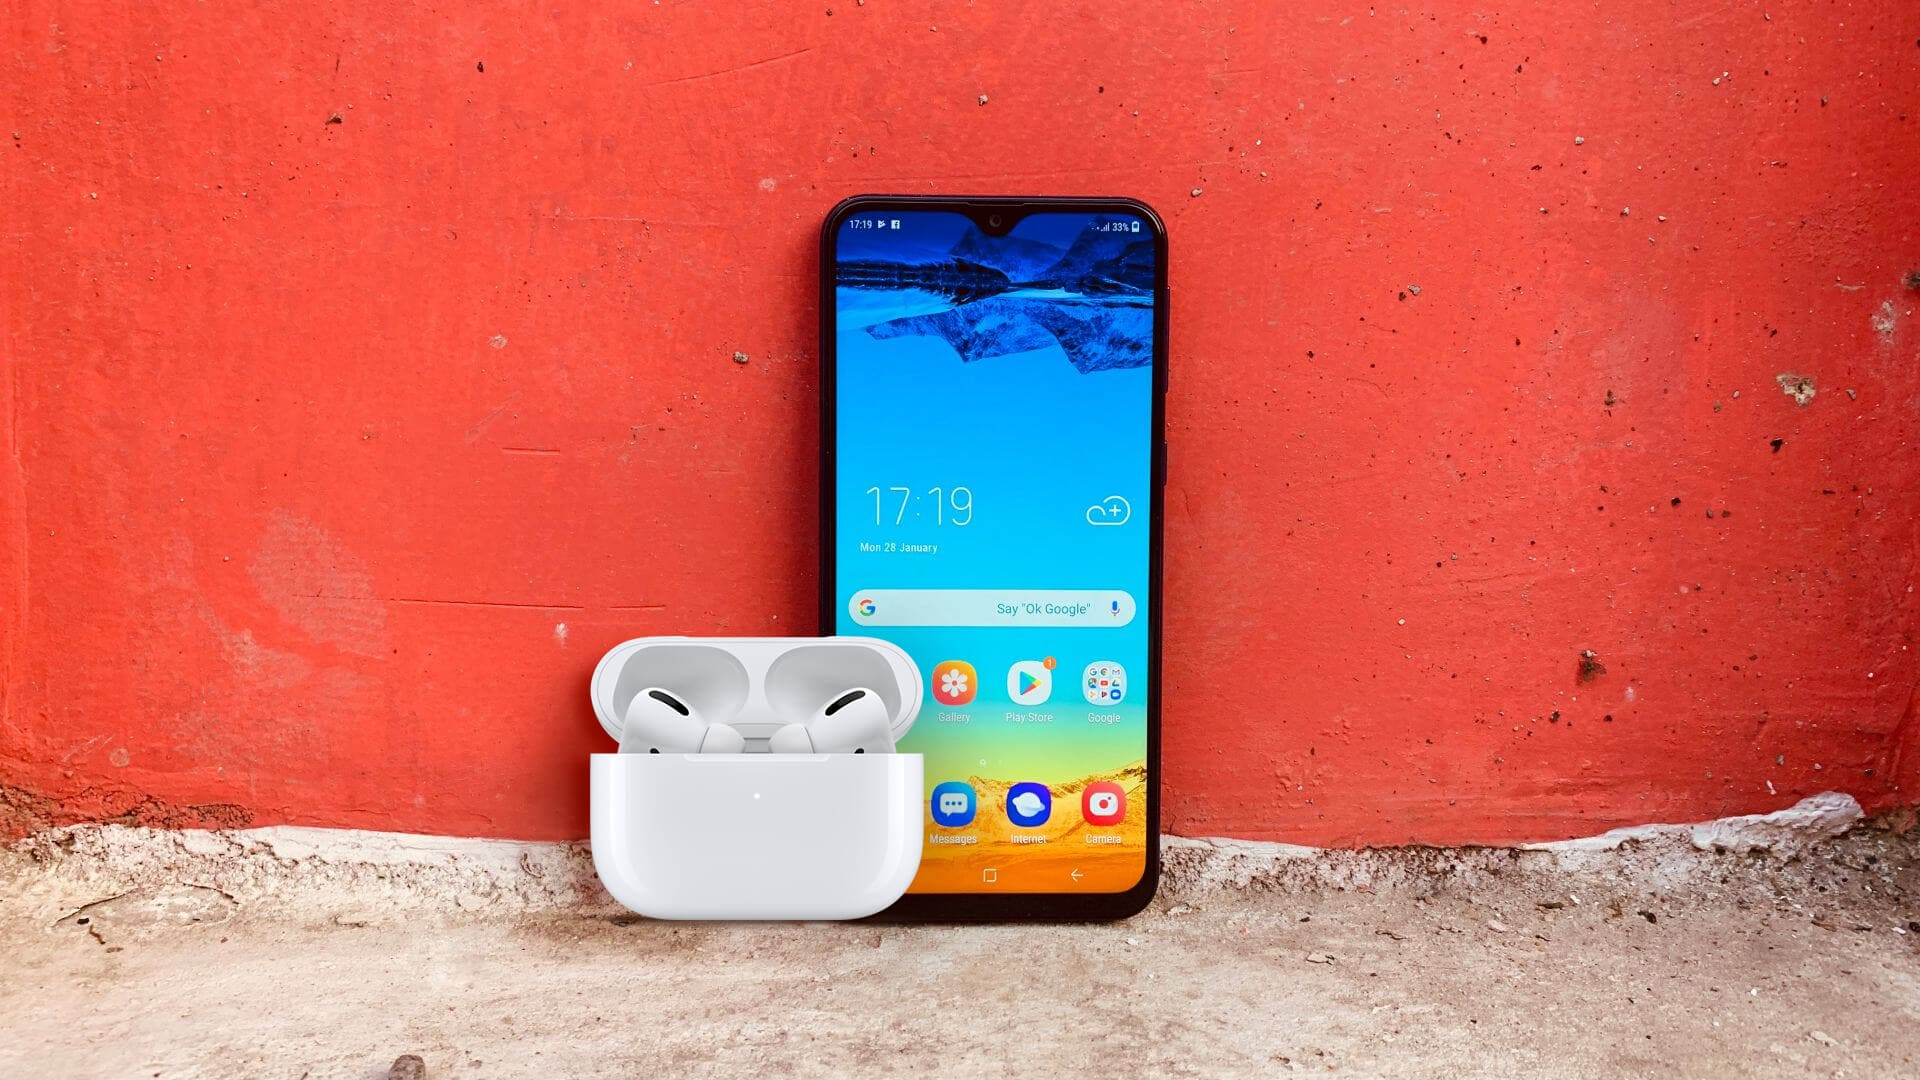 How to Connect your AirPods to an Android Phone